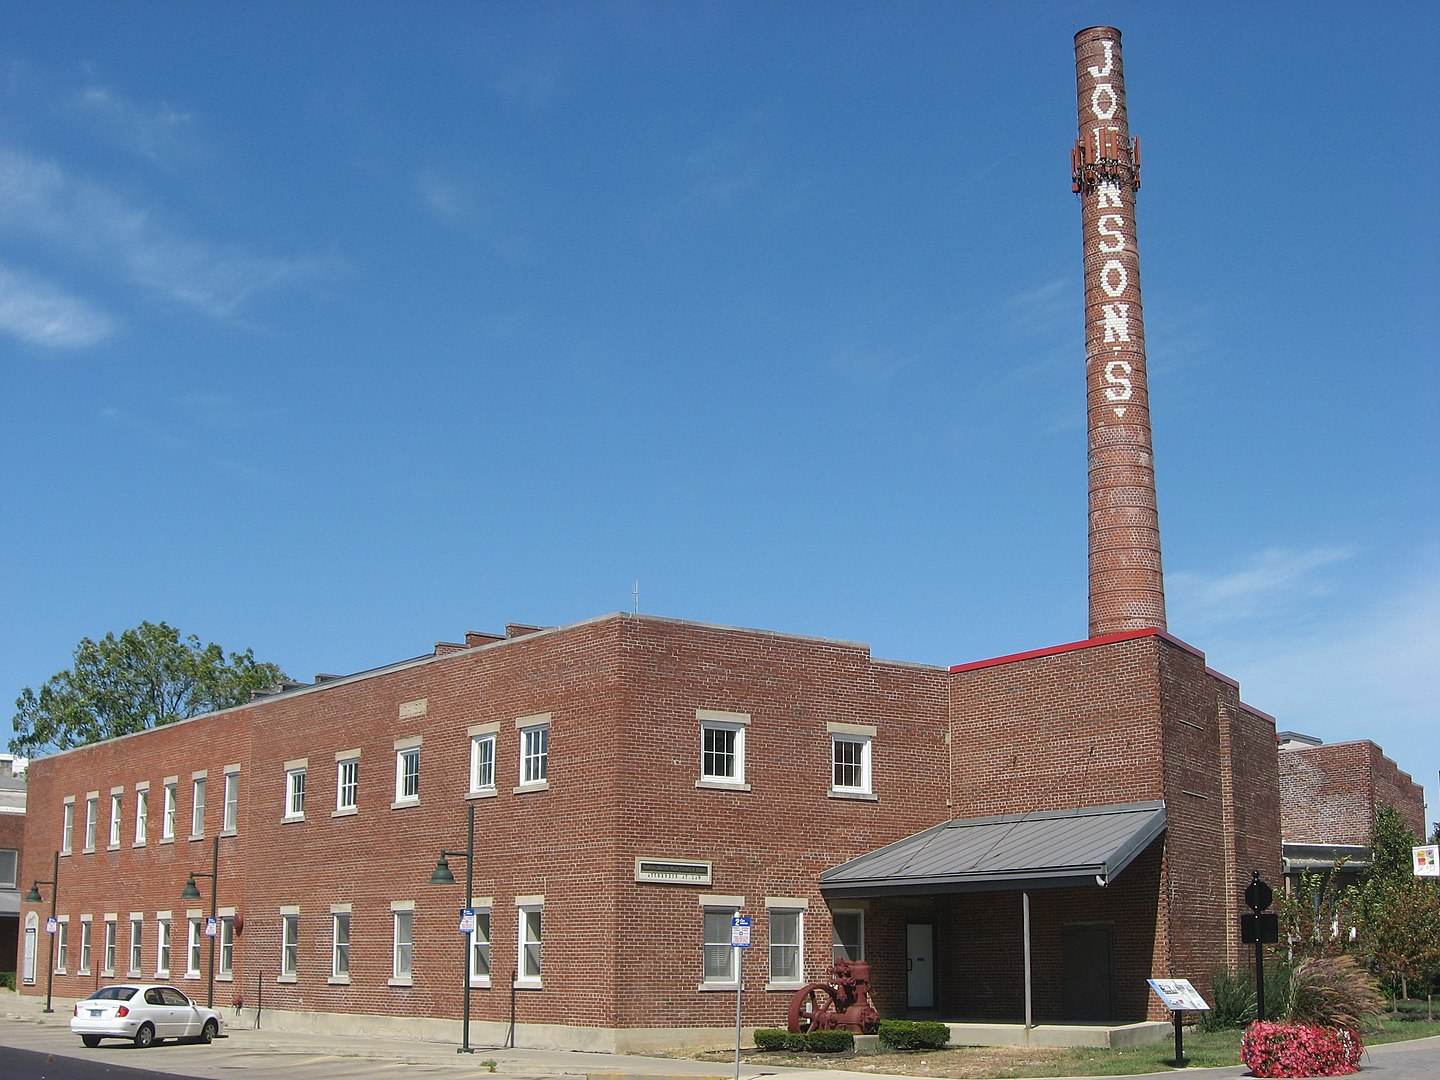 Front of Johnson's Creamery, located at 400 W. Seventh Street in Bloomington, Indiana, United States.